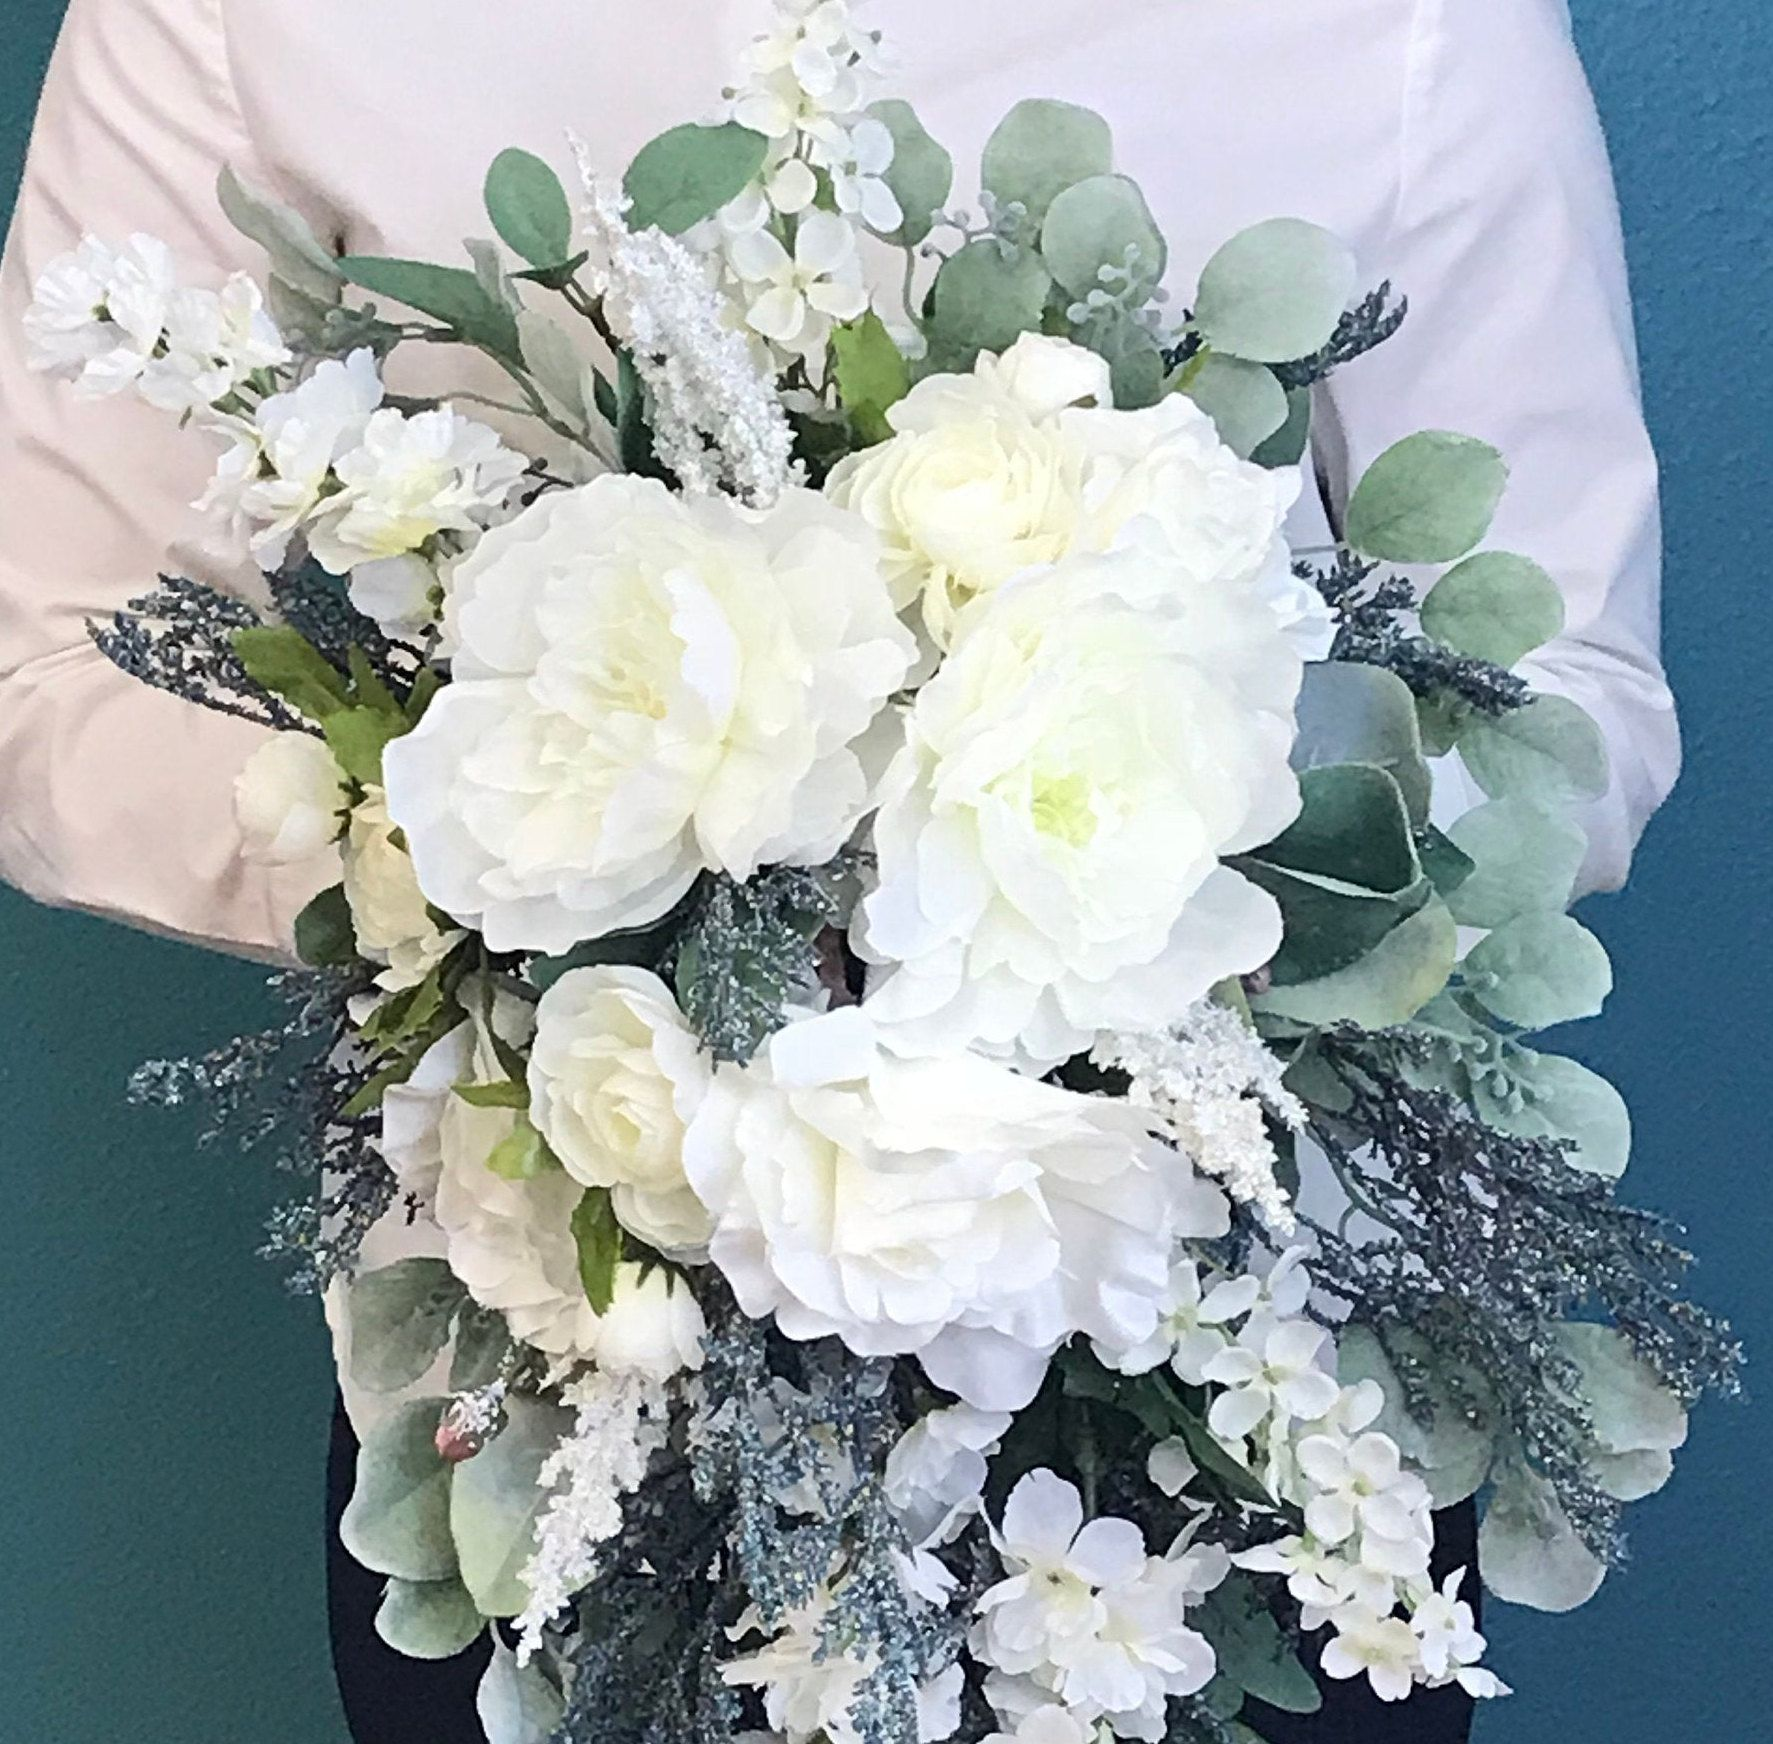 White & Blue Silk Cascading Bridal Bouquet-Steel Blue Bridal Bouquet-Steel Blue Statice-Peonies-English Garden Rose-Cabbage Rose-Delphiniums #whitebridalbouquets